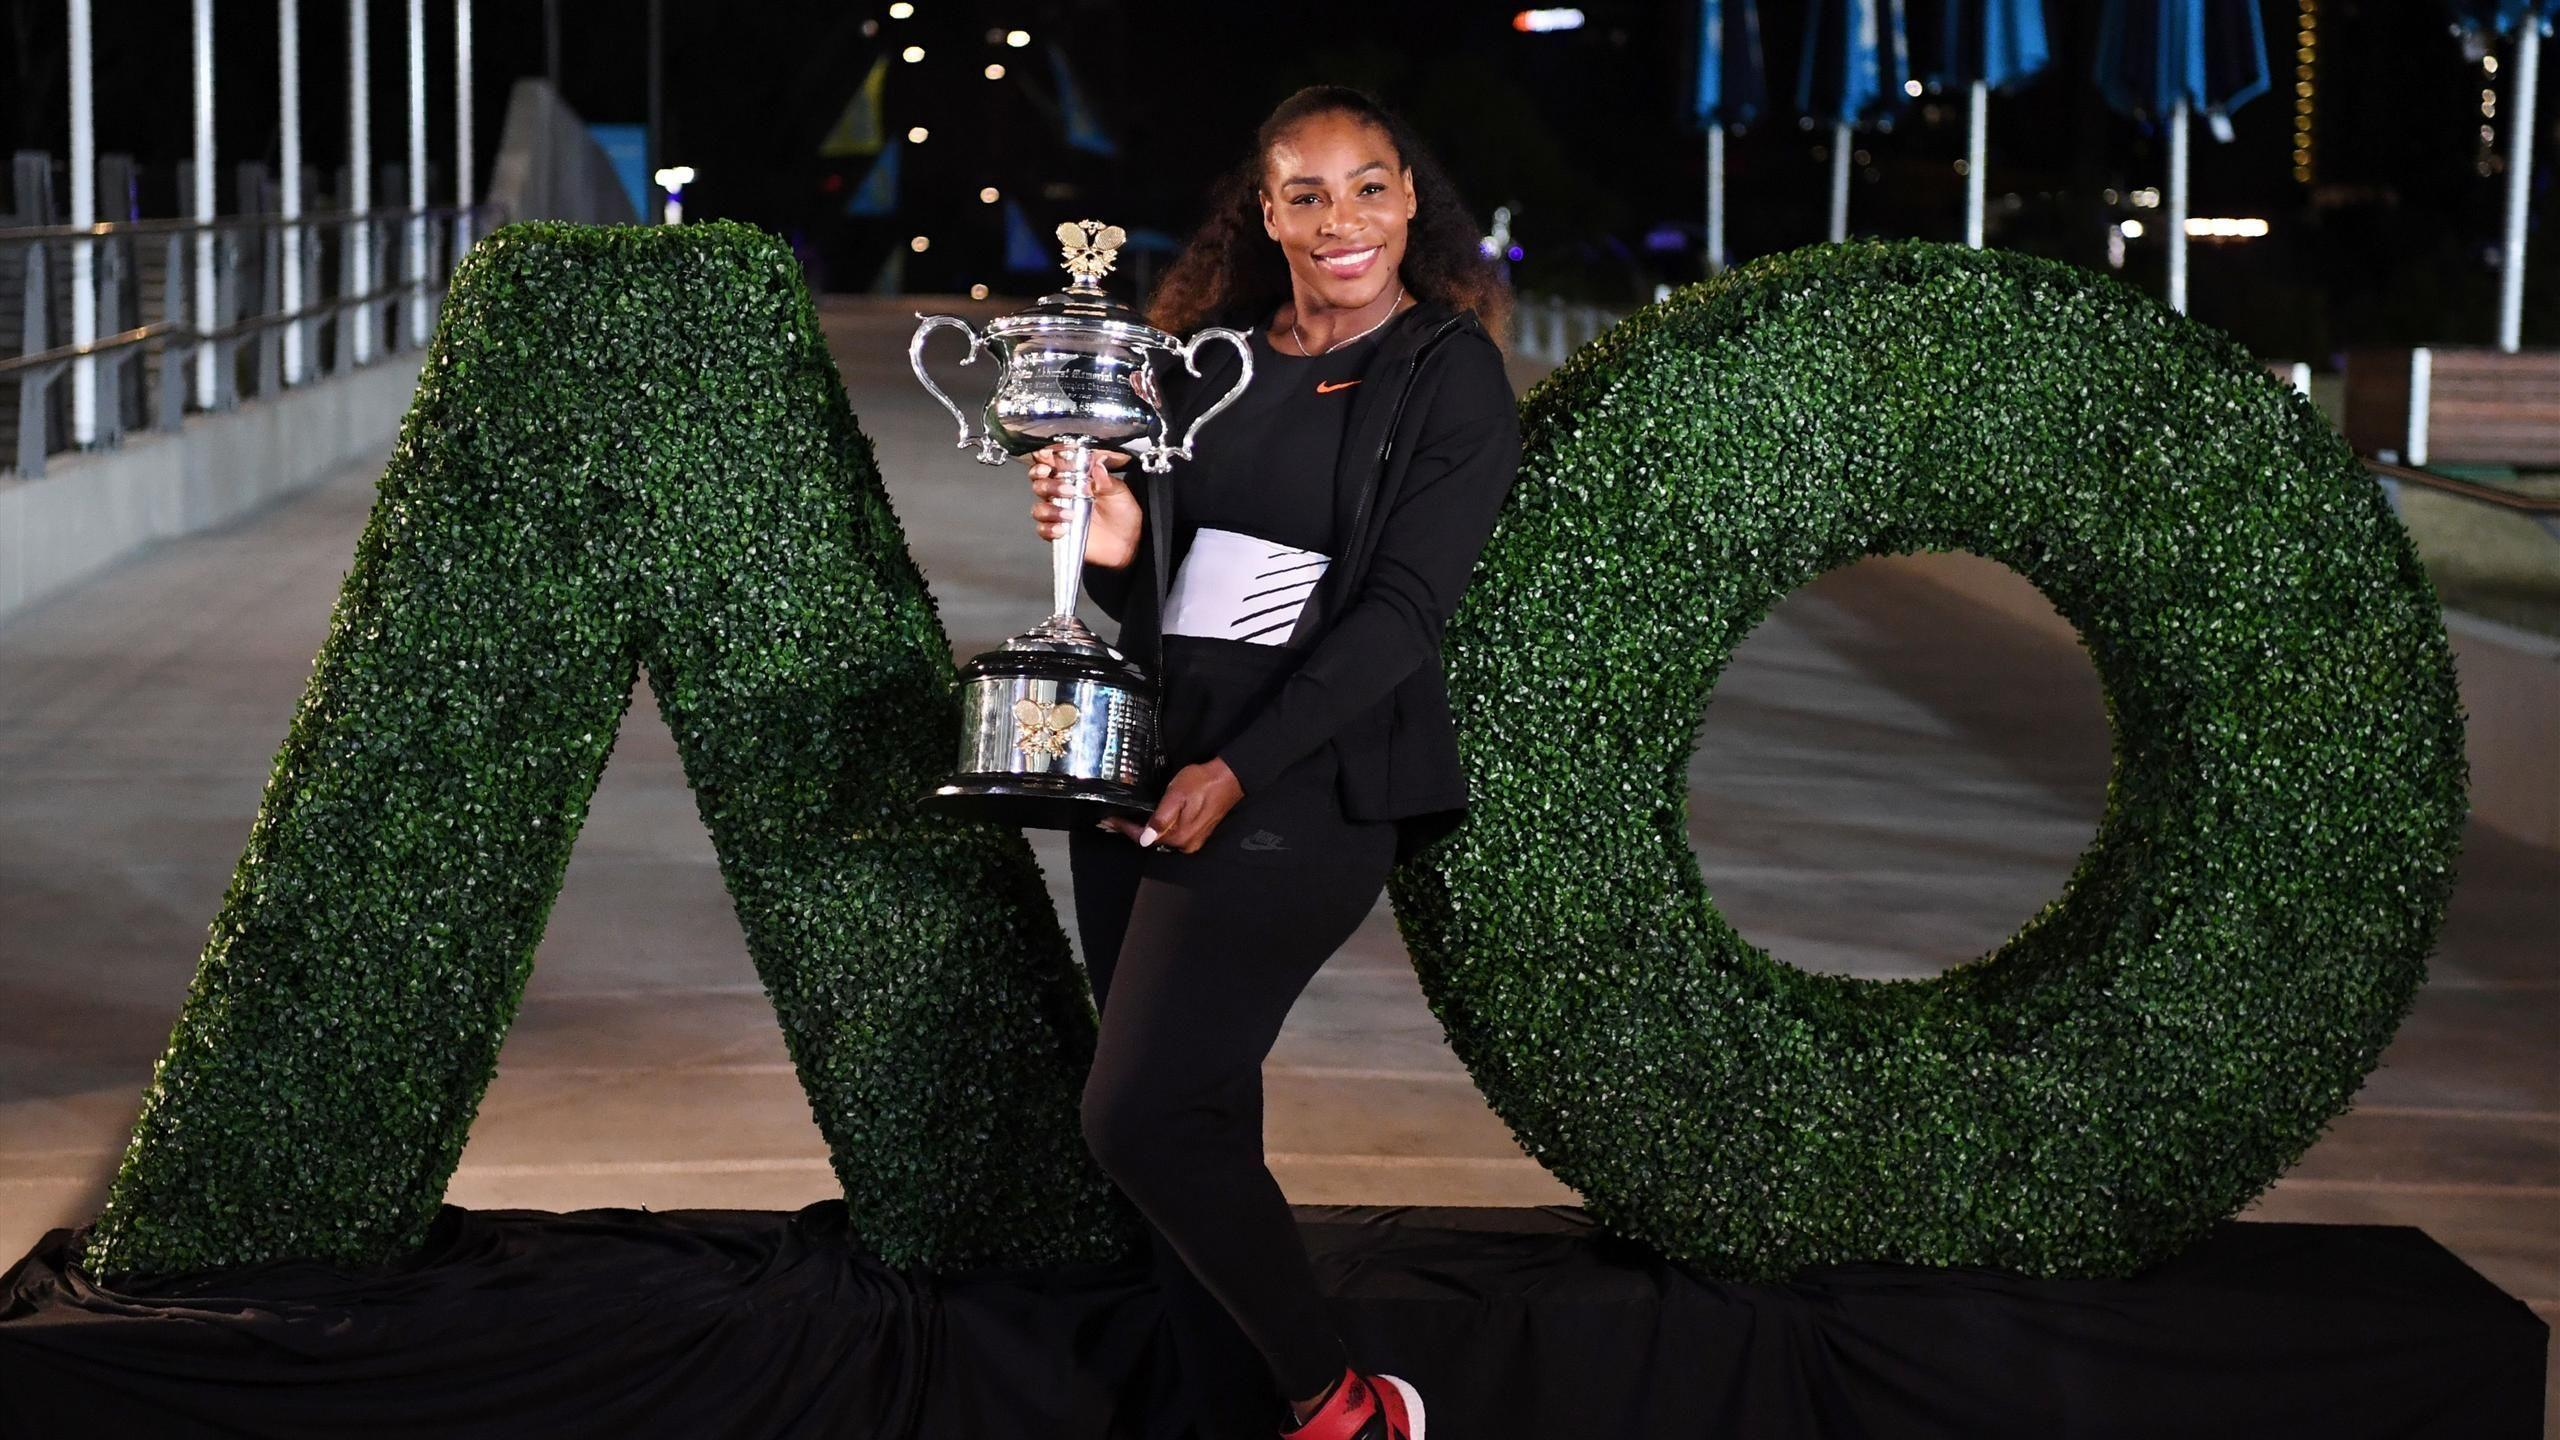 Serena Williams withdraws from Australian Open - cetusnews